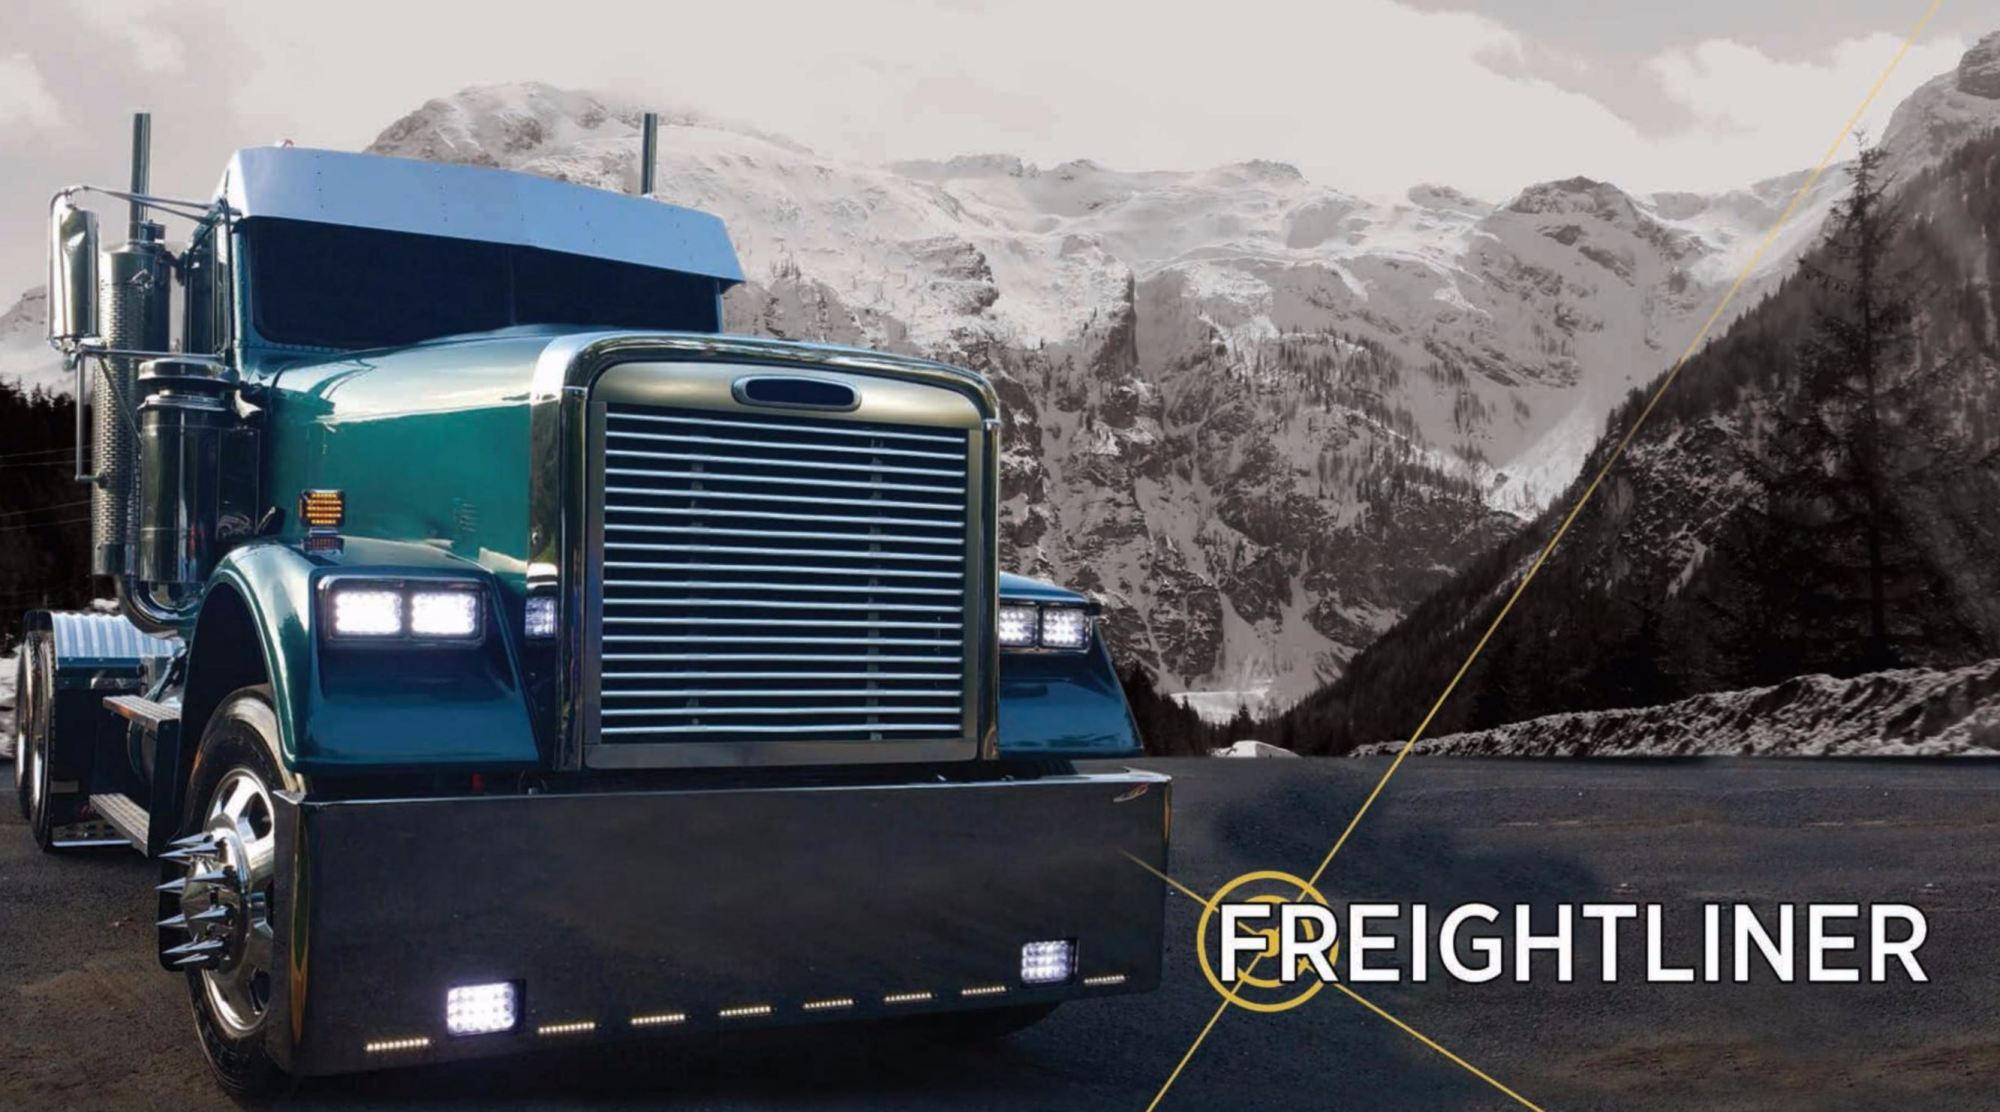 hight resolution of freightliner truck picture jpg